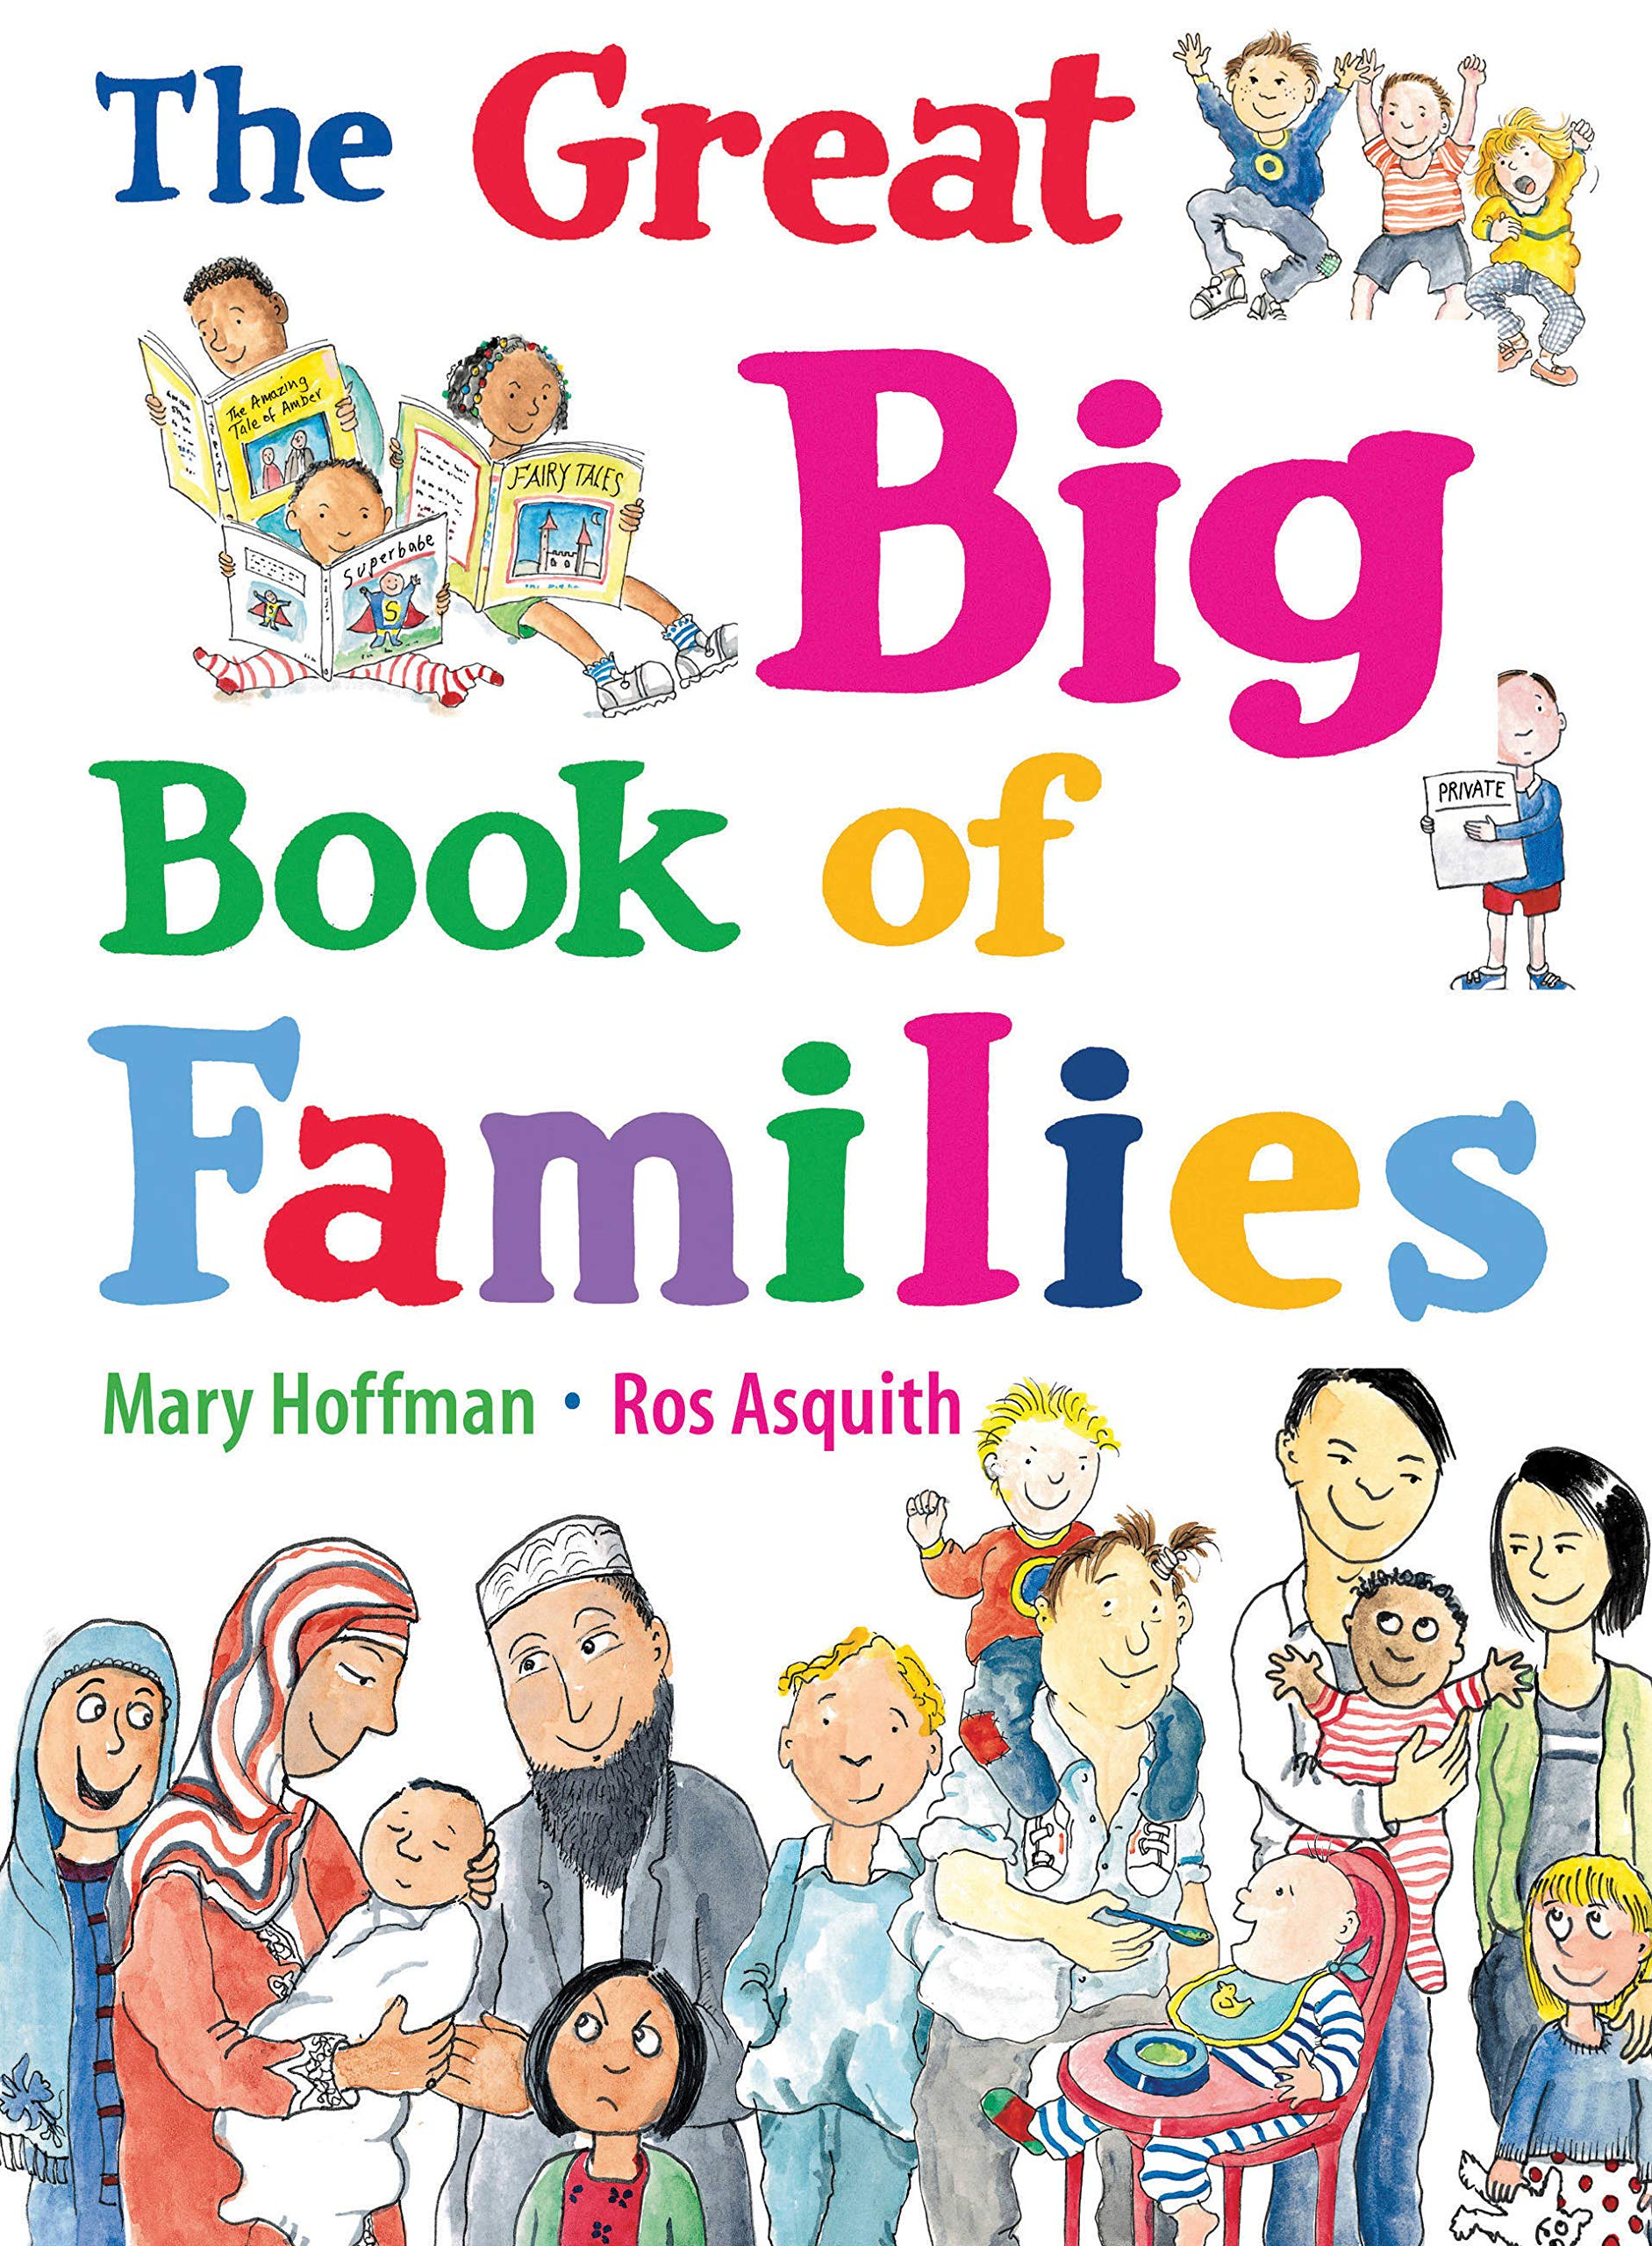 The Great Big Book of Families: Amazon.co.uk: Hoffman, Mary, Asquith, Ros:  9781847805874: Books